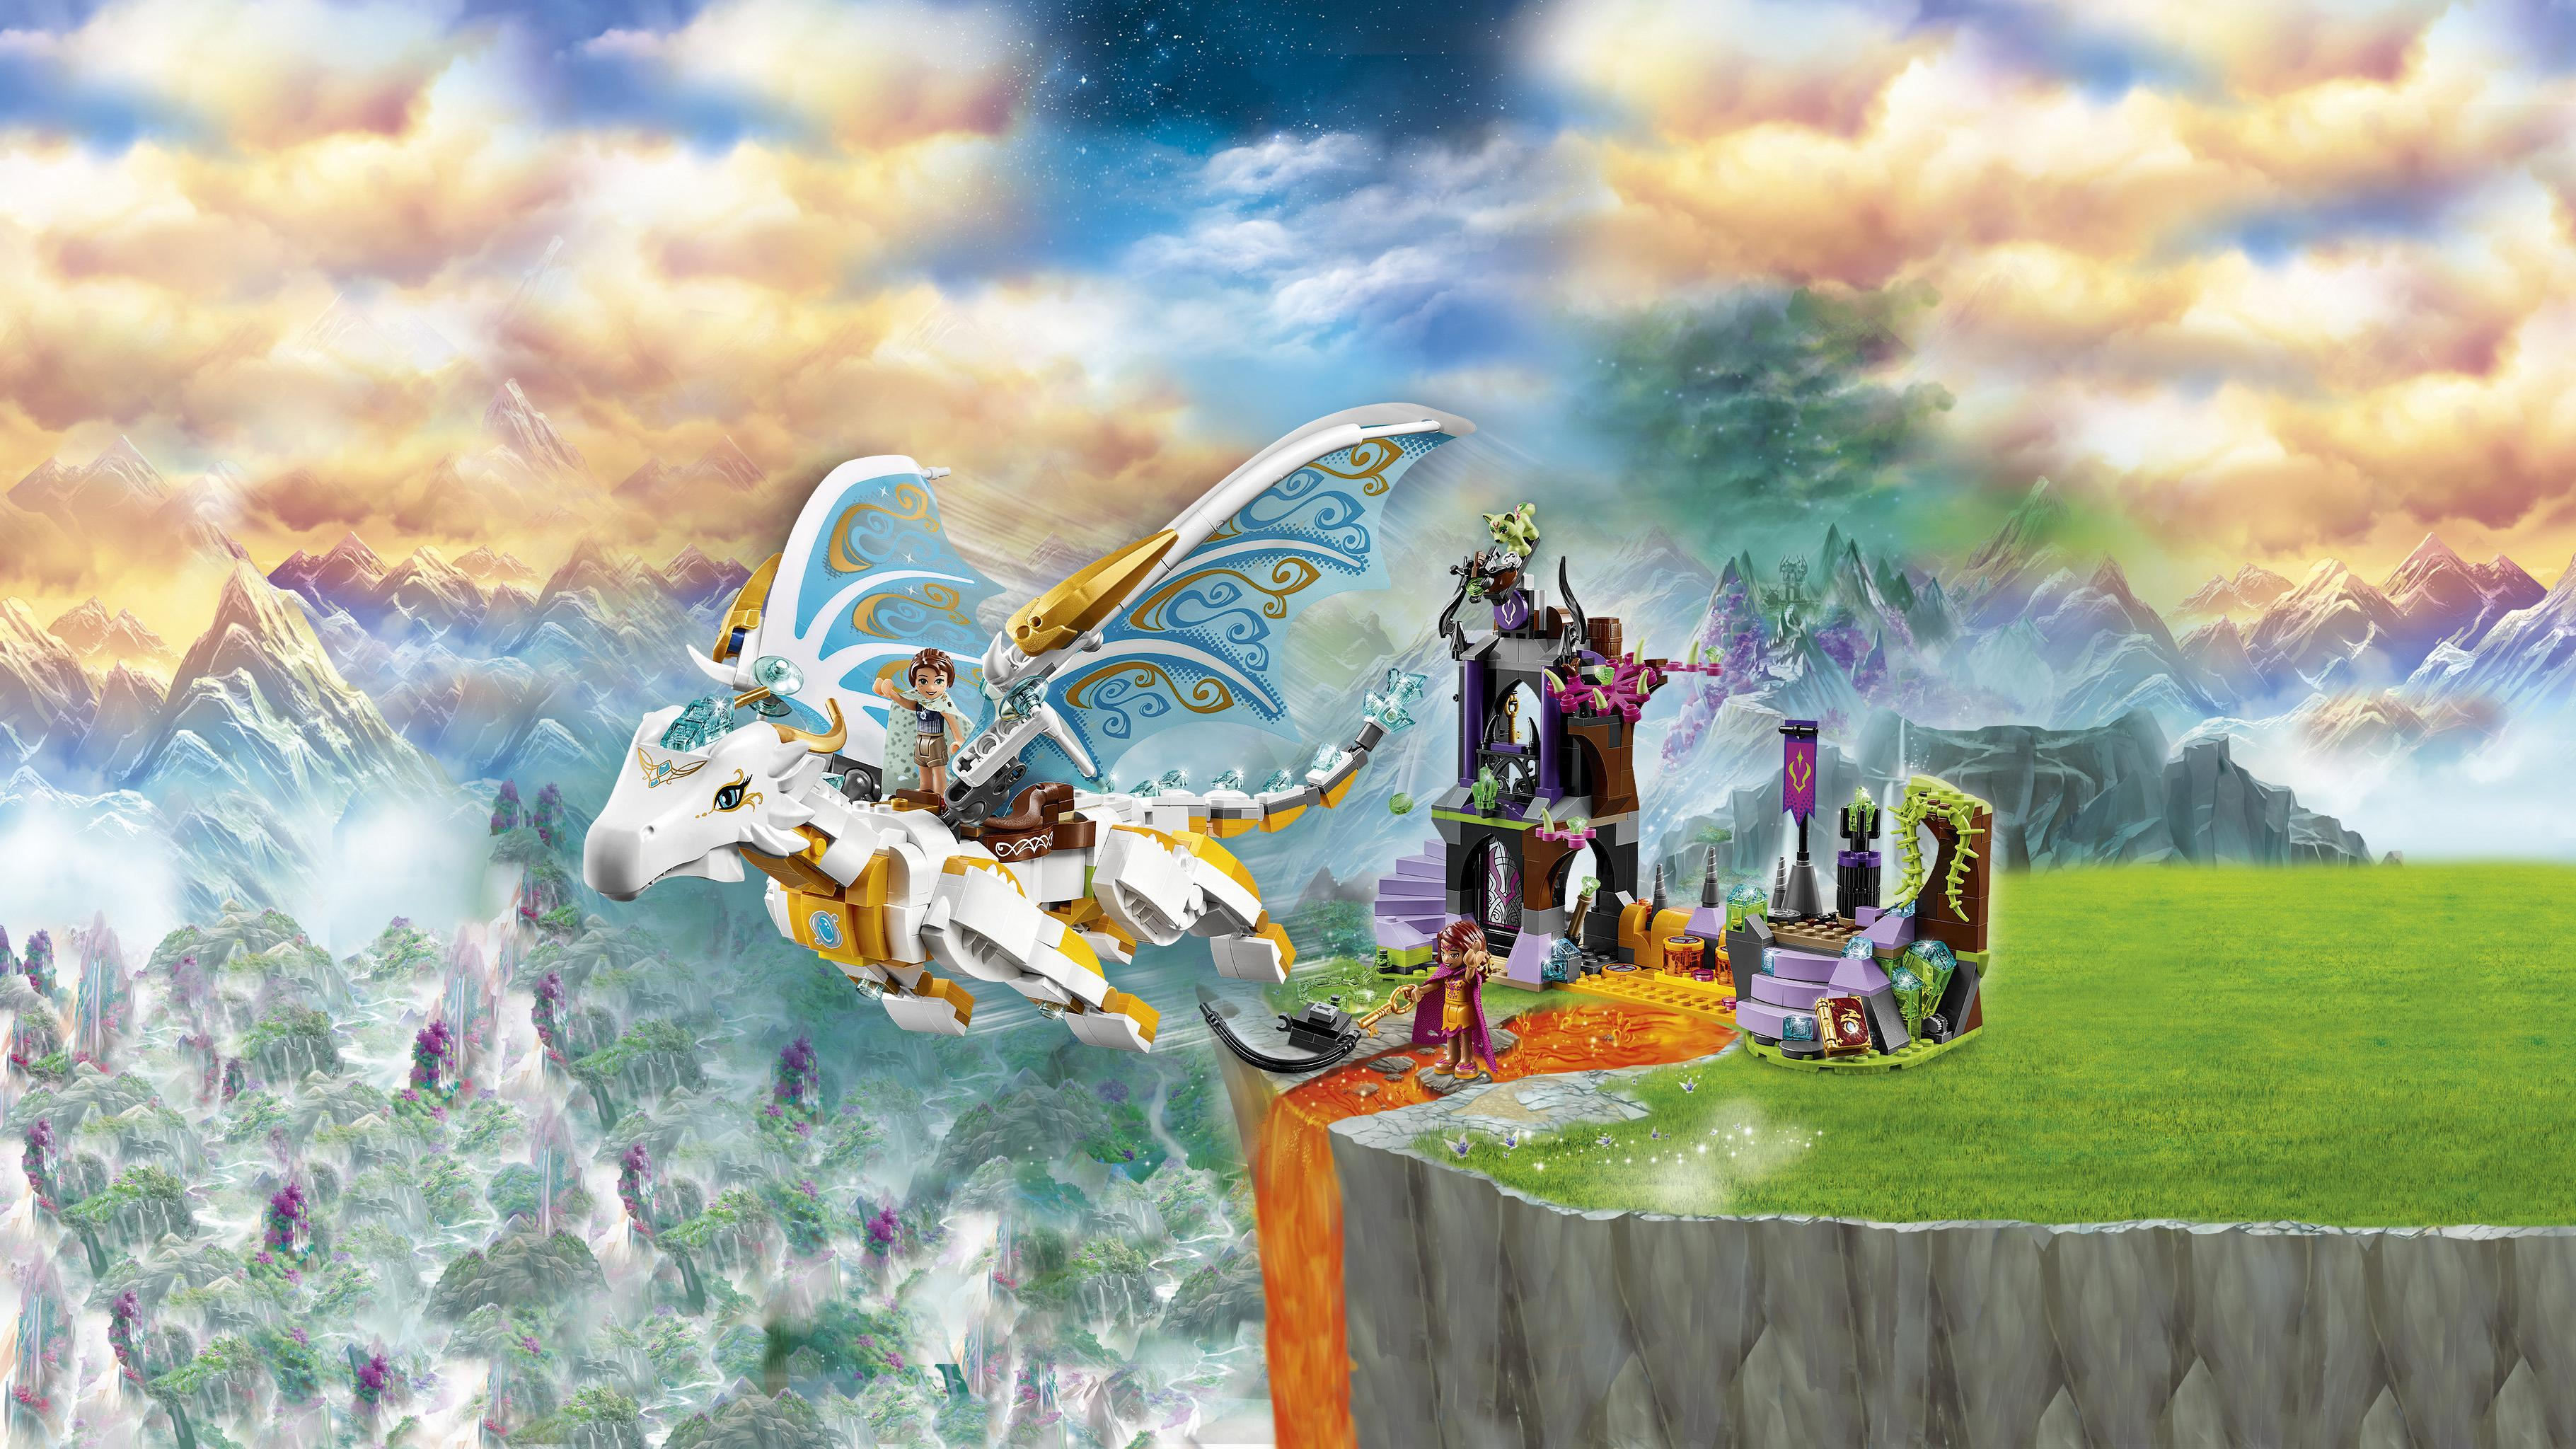 lego elves queen dragon 39 s rescue 41179 creative play toy for 9 to 12